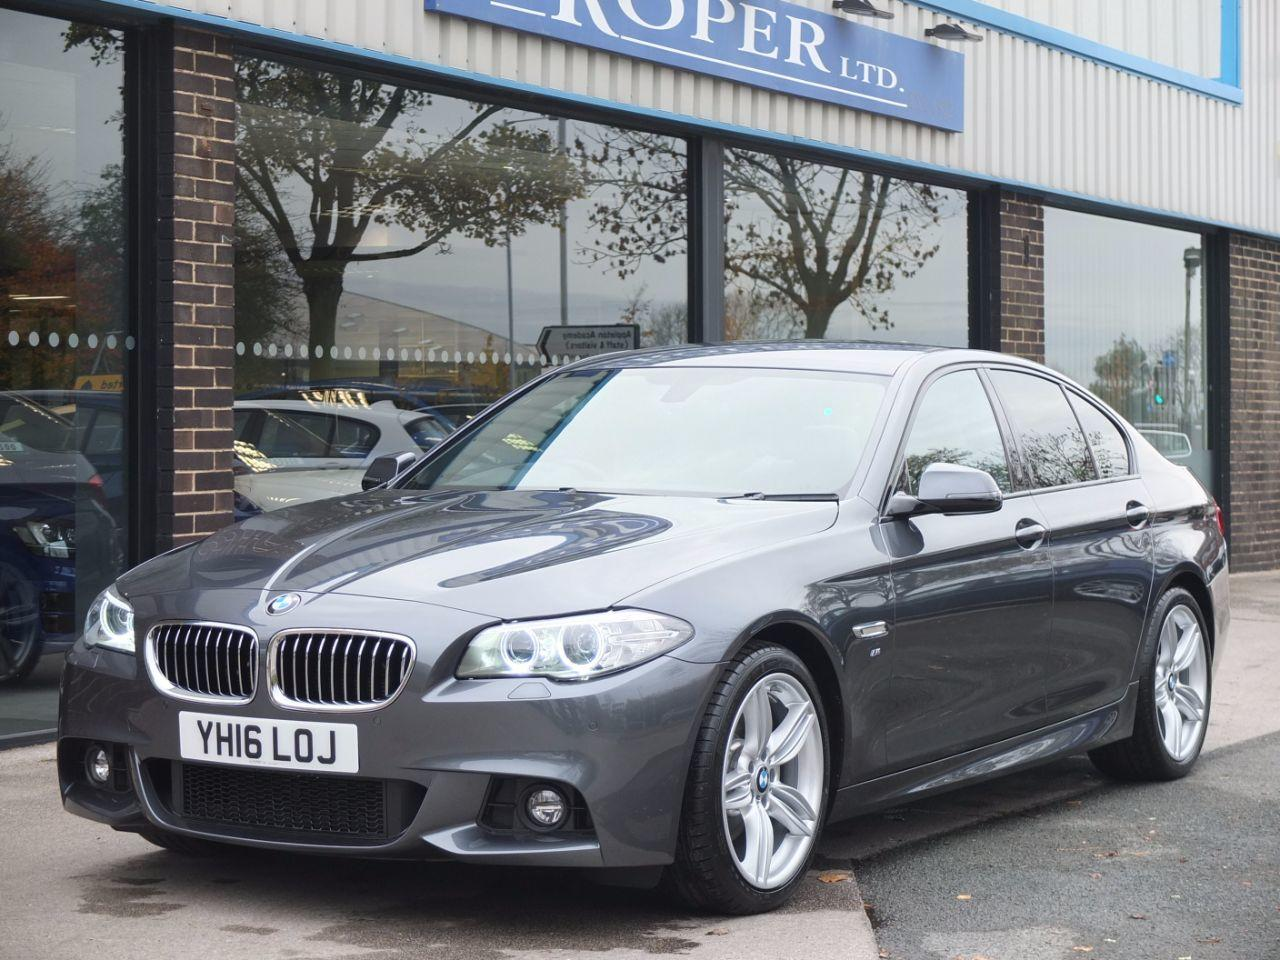 BMW 5 Series 2.0 520d [190] M Sport Plus Pack Auto Saloon Diesel Mineral Grey MetallicBMW 5 Series 2.0 520d [190] M Sport Plus Pack Auto Saloon Diesel Mineral Grey Metallic at fa Roper Ltd Bradford